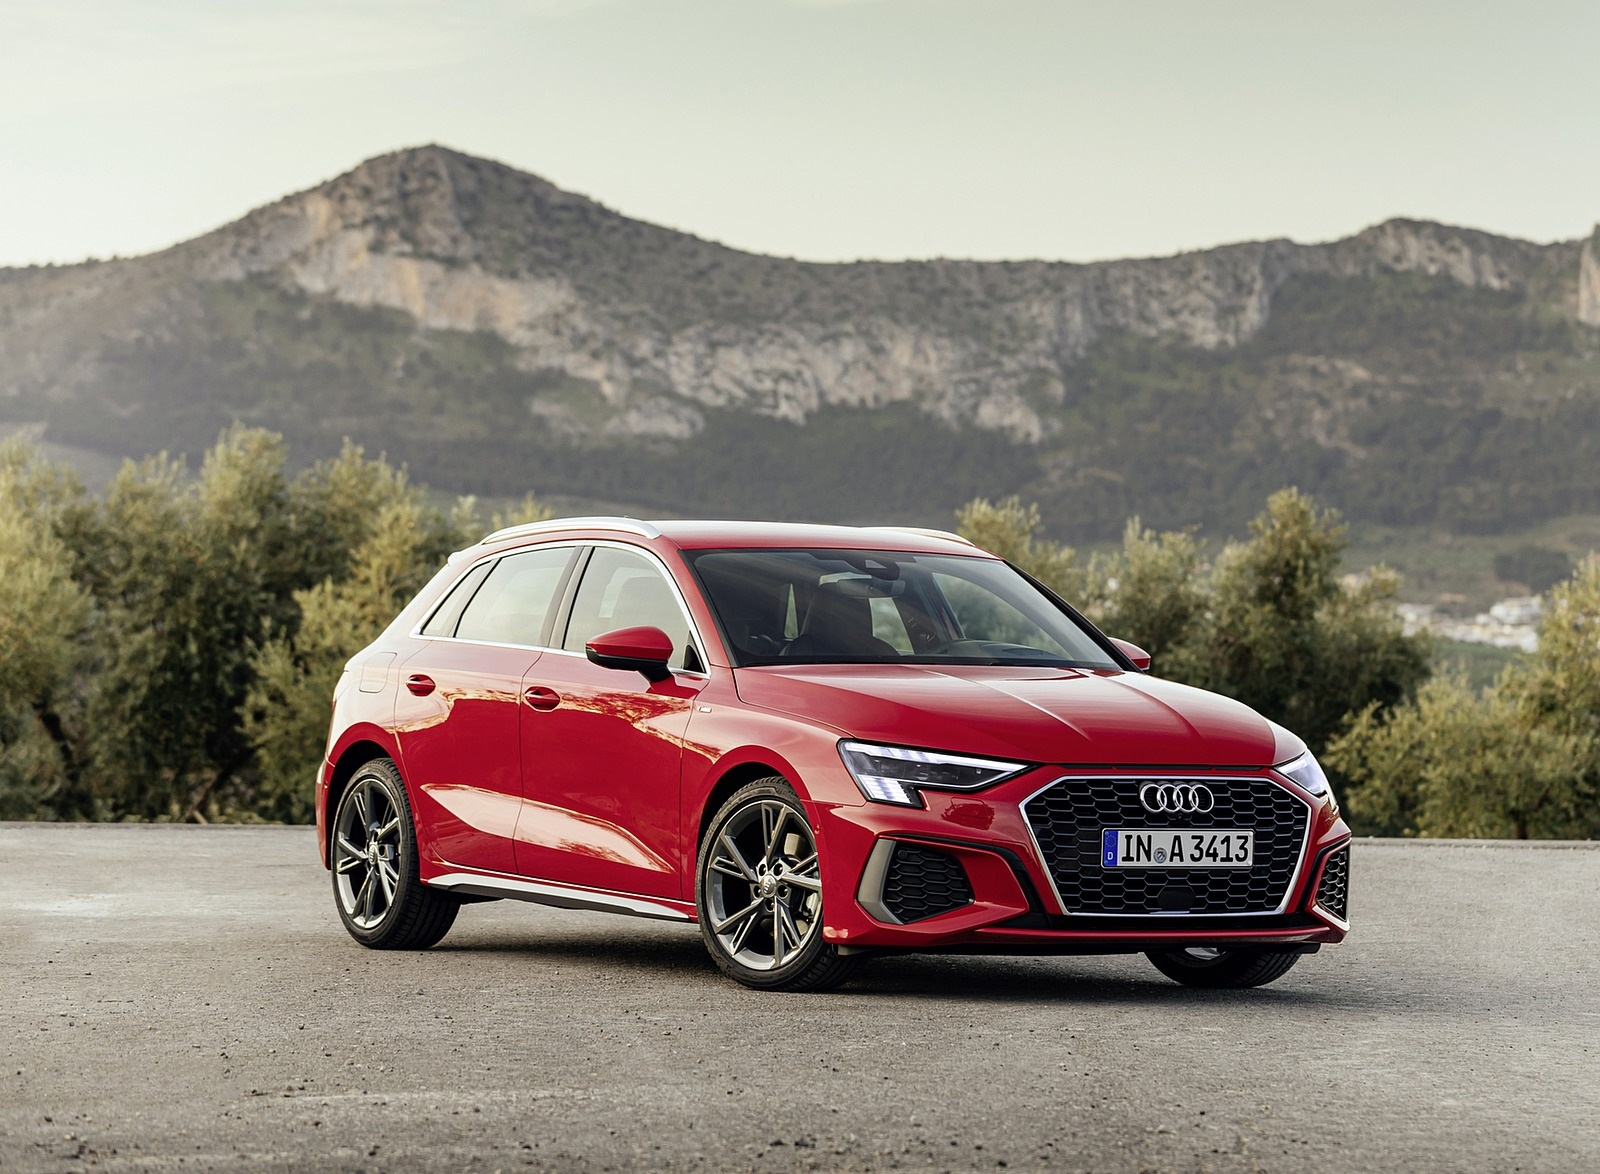 2021 Audi A3 Sportback (Color: Tango Red) Front Three-Quarter Wallpapers (5)